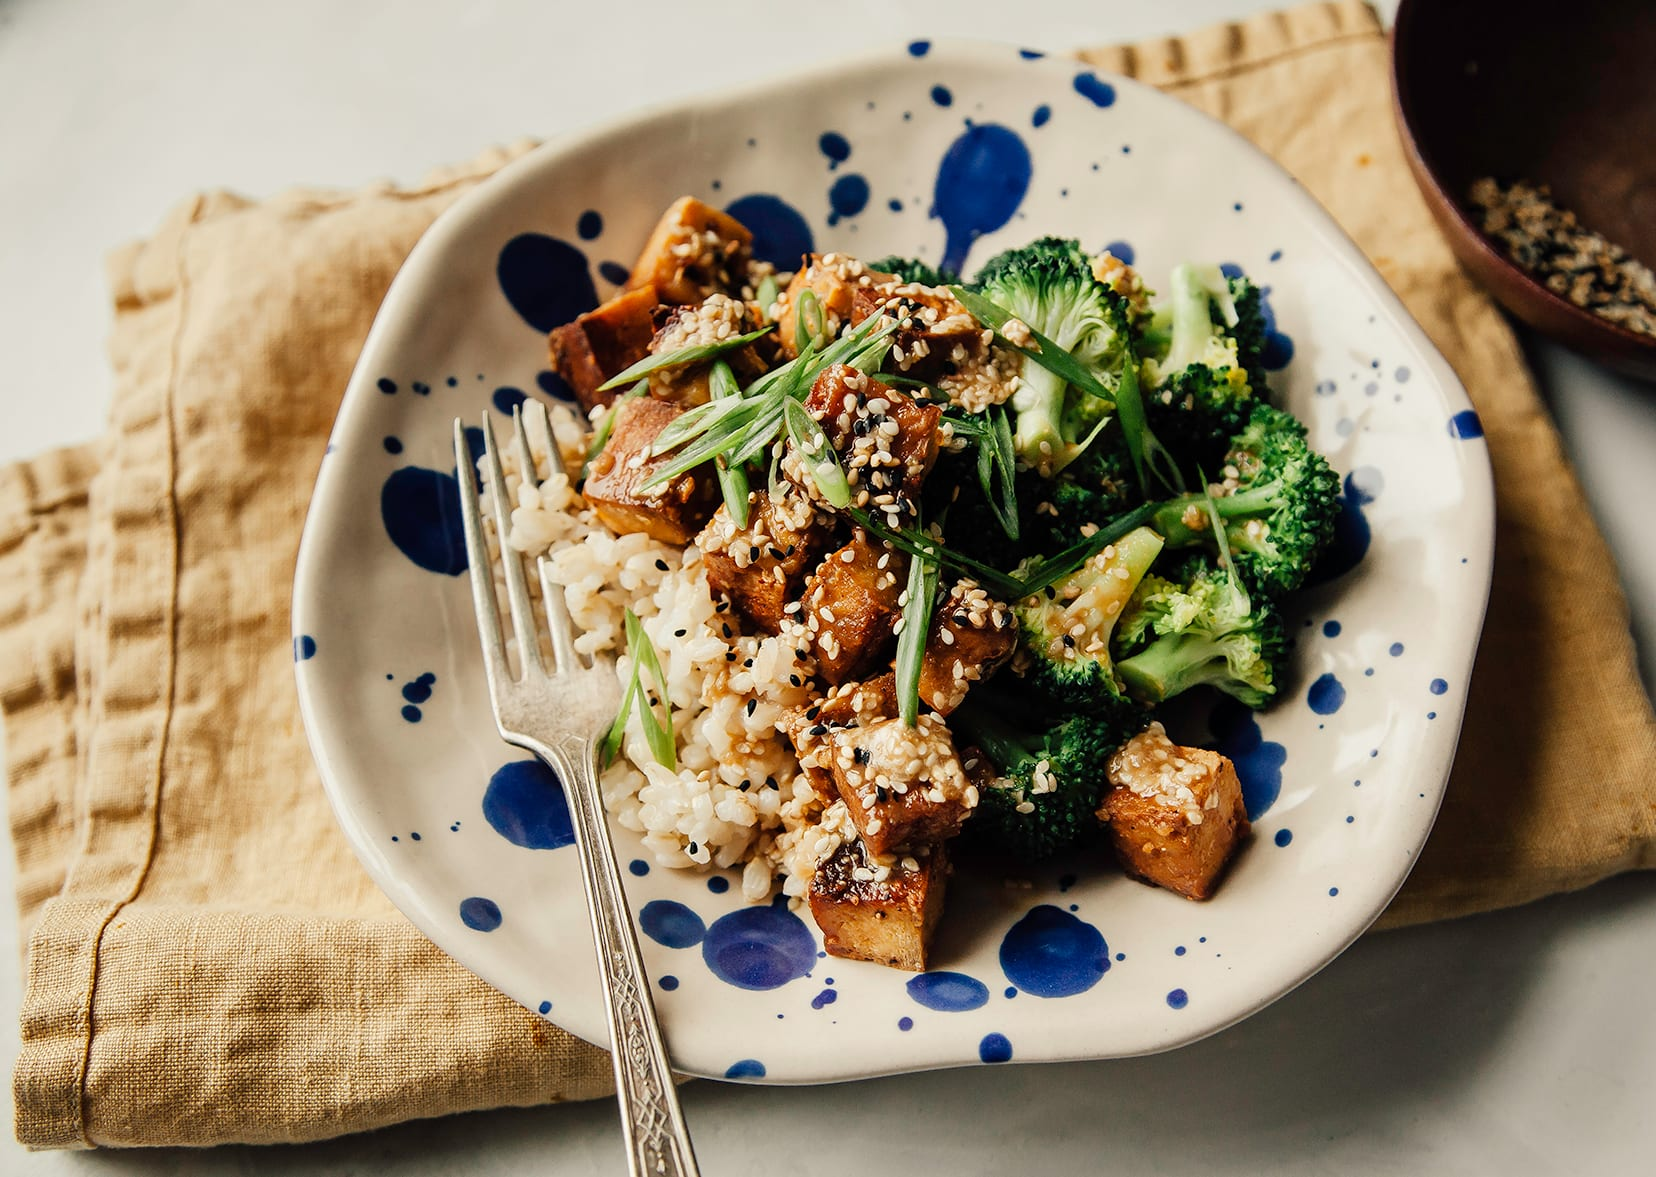 Overhead shot of crispy sesame garlic tofu in a bowl with some brown rice and steamed broccoli